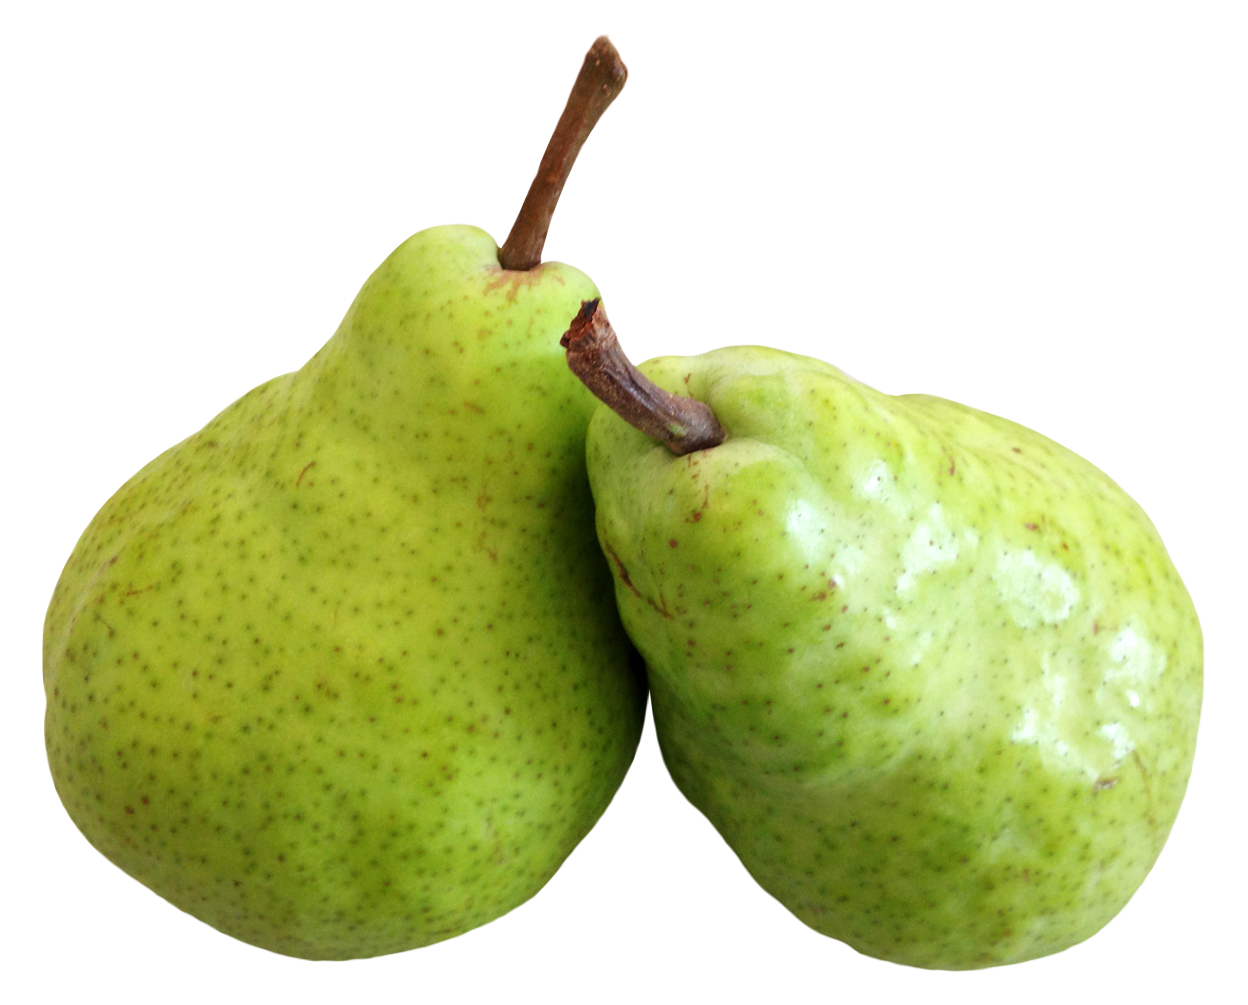 Transparent PNG Pear Image image #38673